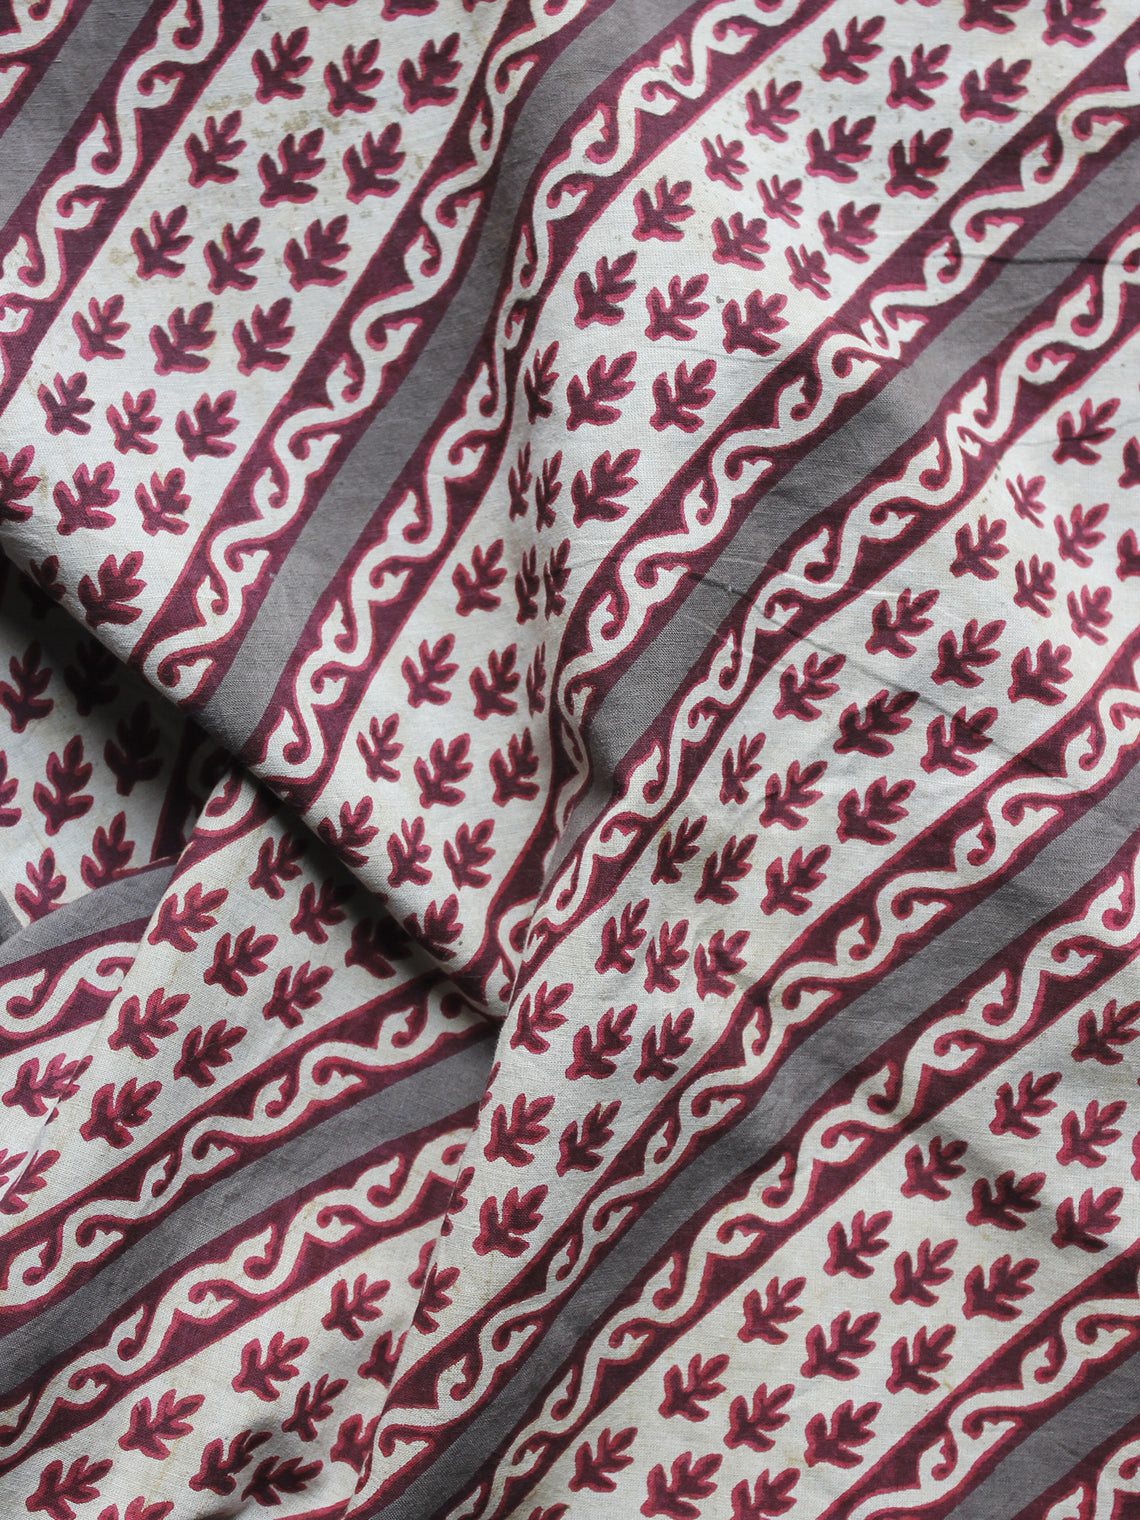 Maroon Ivory Kashish Hand Block Printed Cotton Fabric Per Meter - F001F879